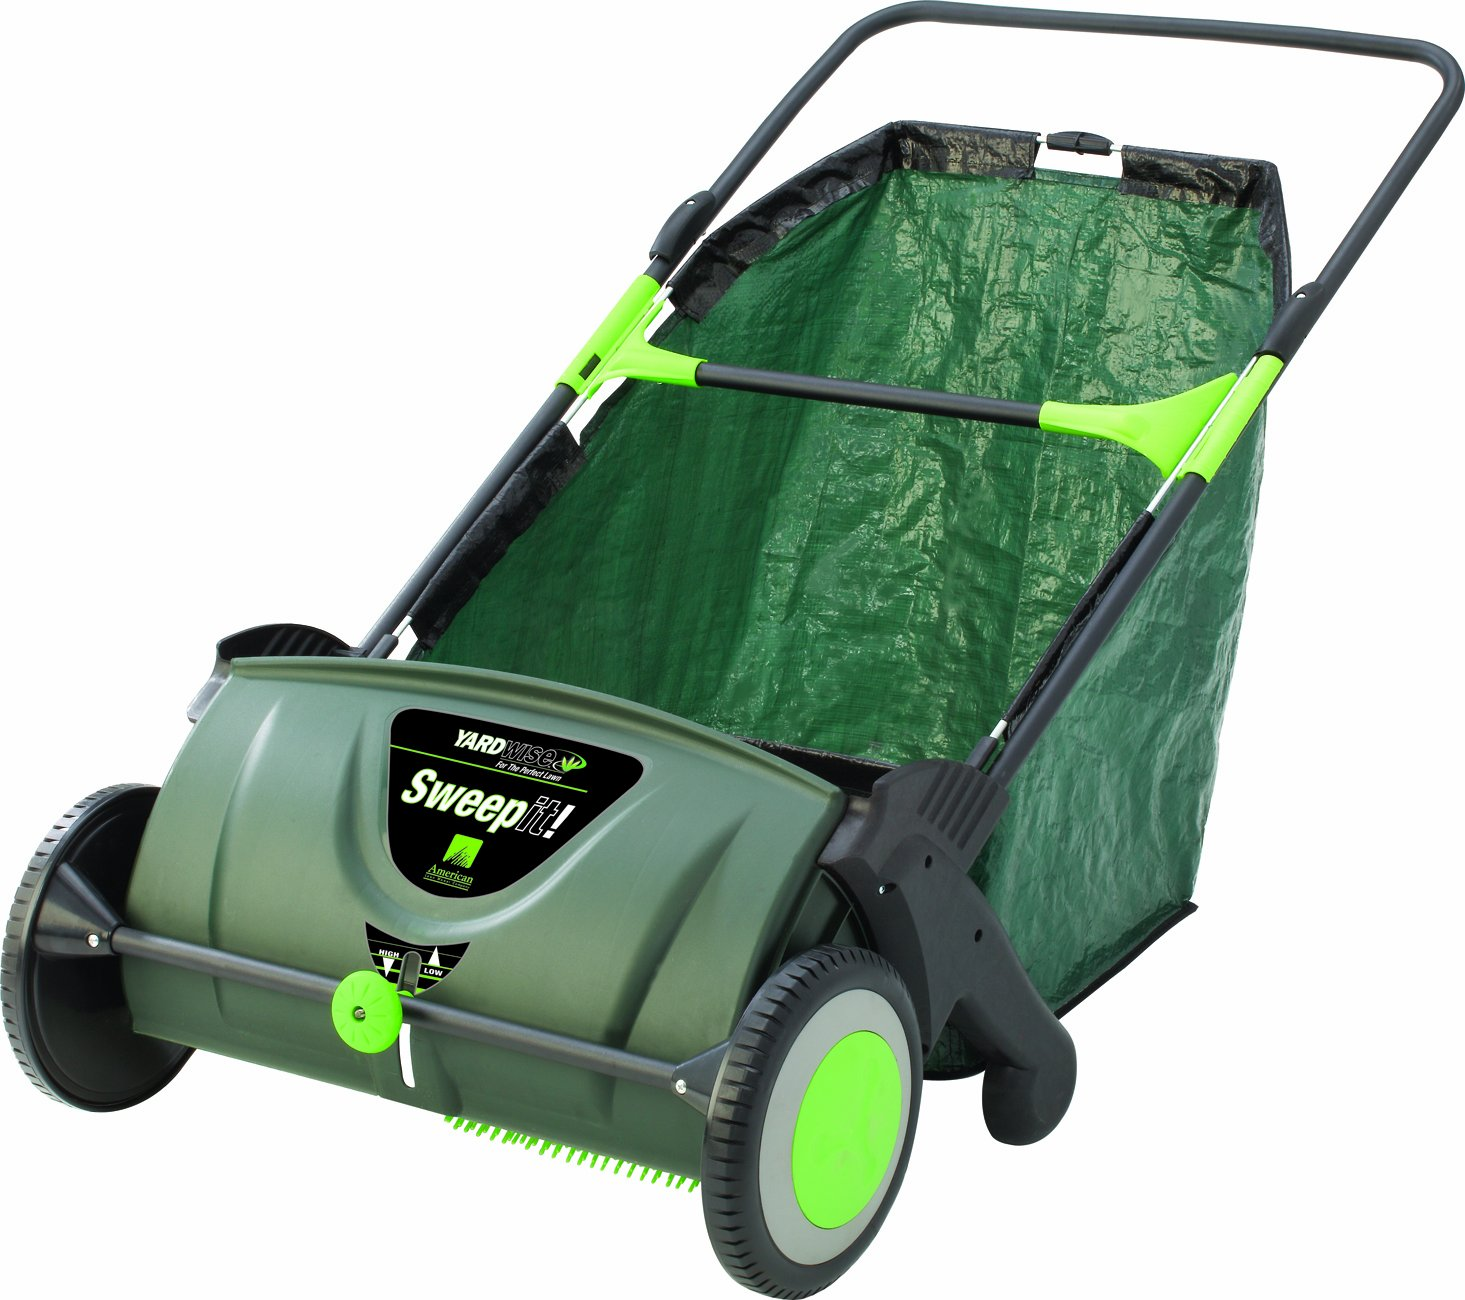 Yardwise- 21-Inch Push Lawn Sweeper